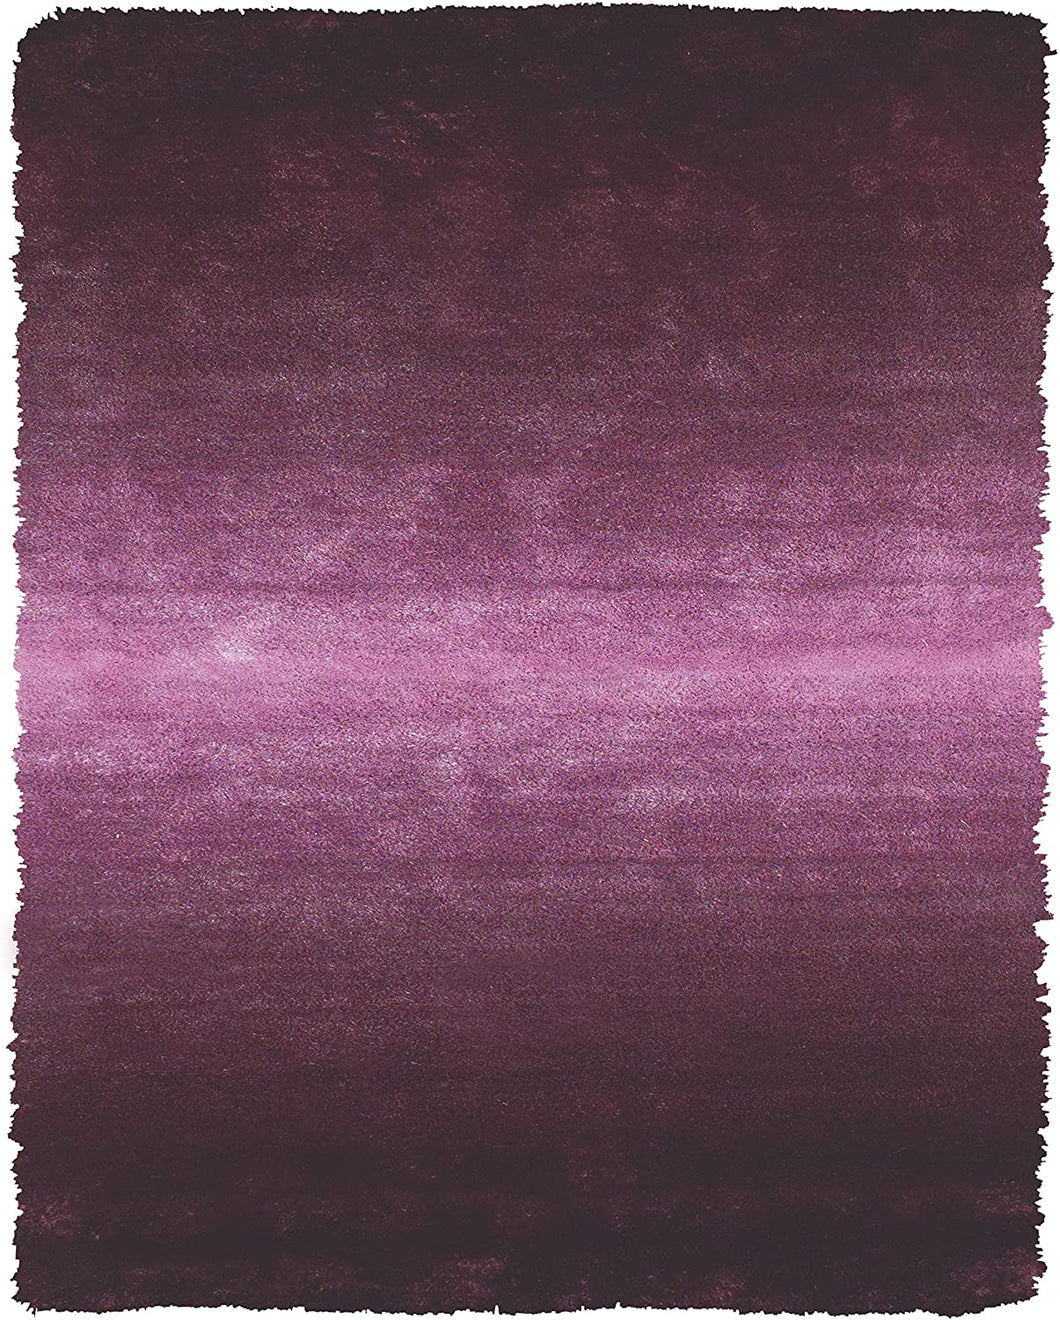 Indochine Purple 7.6x9.6 ft